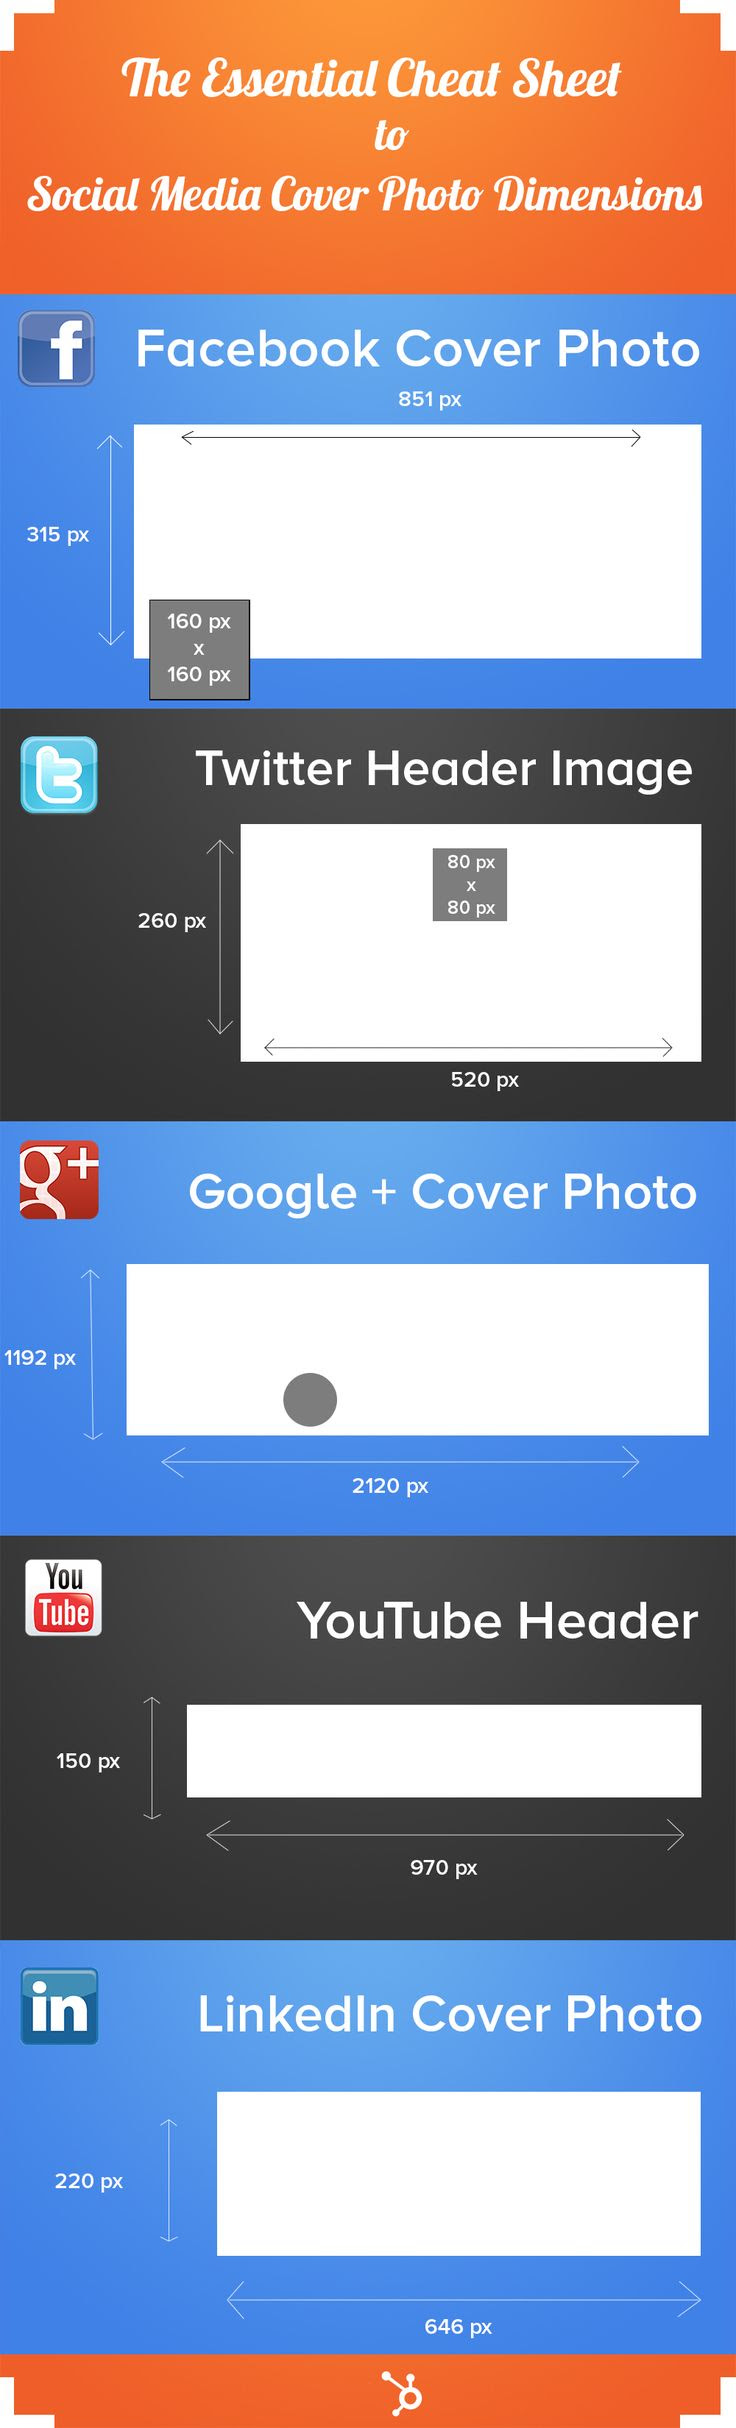 The Marketer's Cheat Sheet for Social Media Cover Photo Dimensions [+ Pre-Sized Templates]